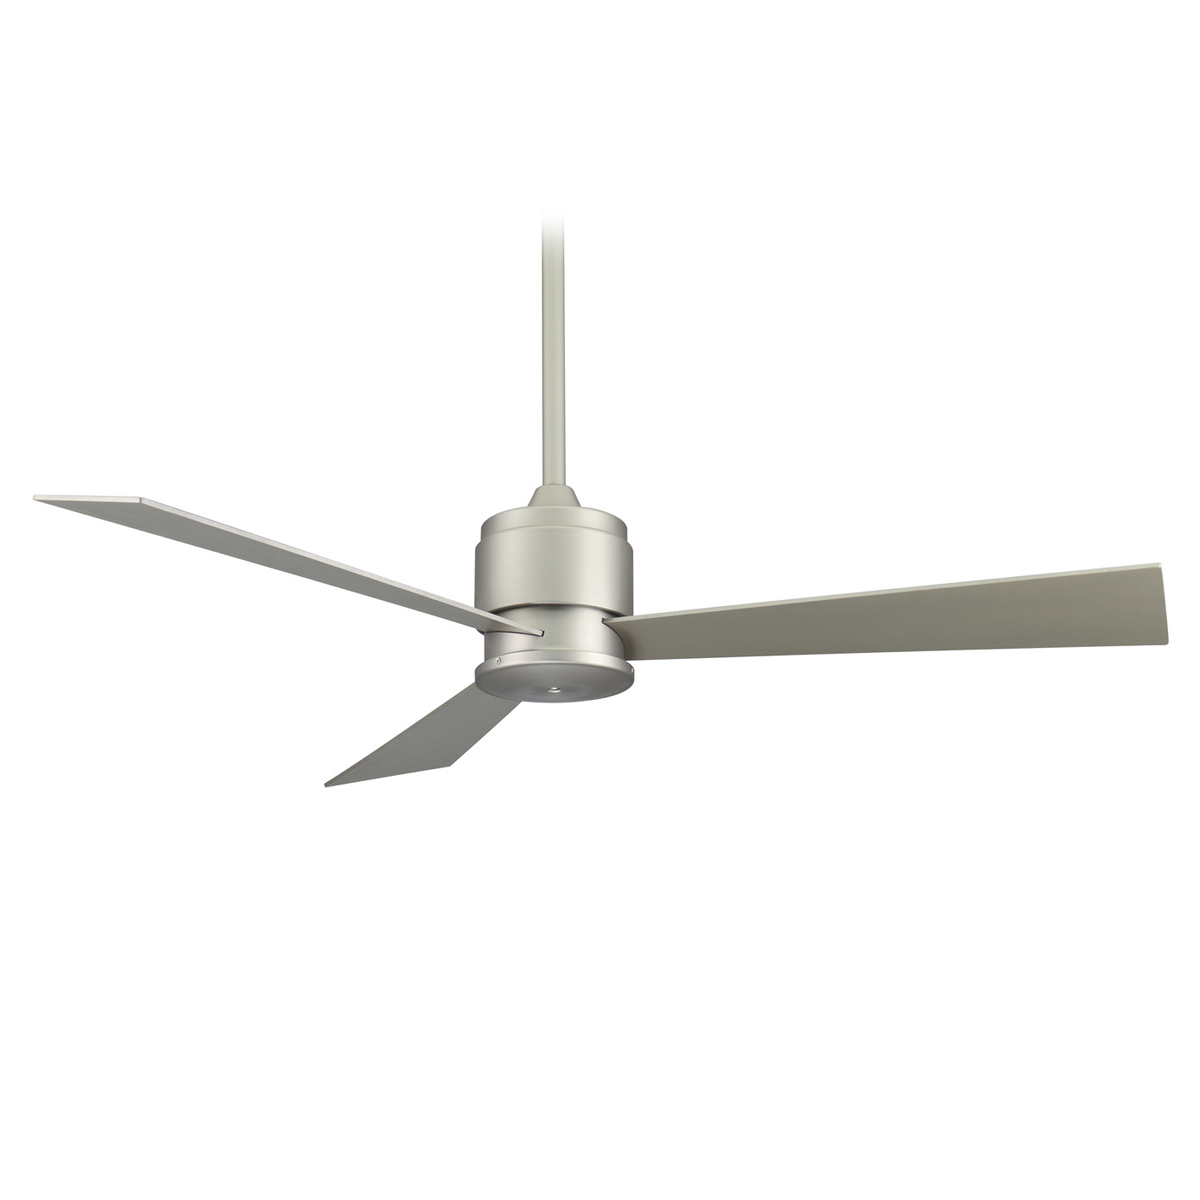 Fanimation The Zonix Ceiling Fan Outdoor 索隆 吊扇 42吋 室外版